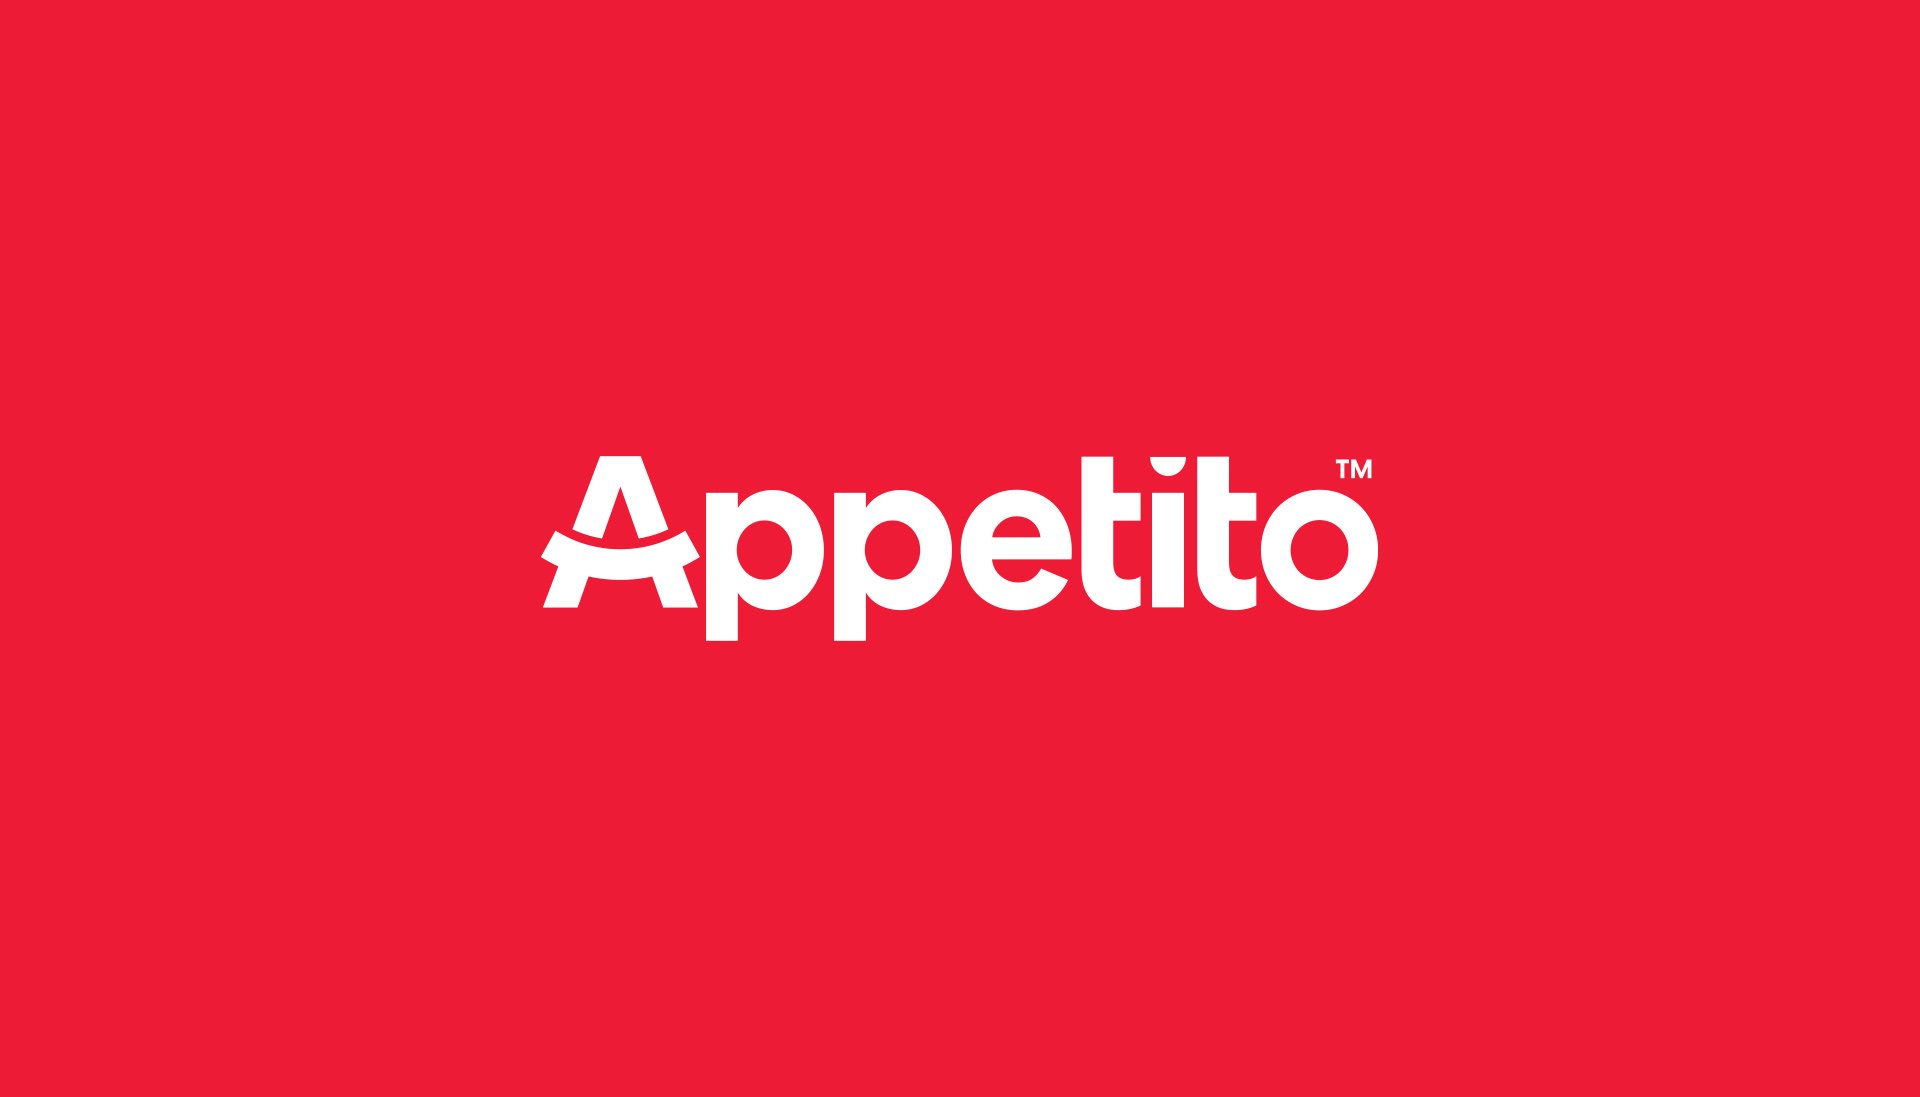 Ooh my brand! Worked on Appetito's Rebranding